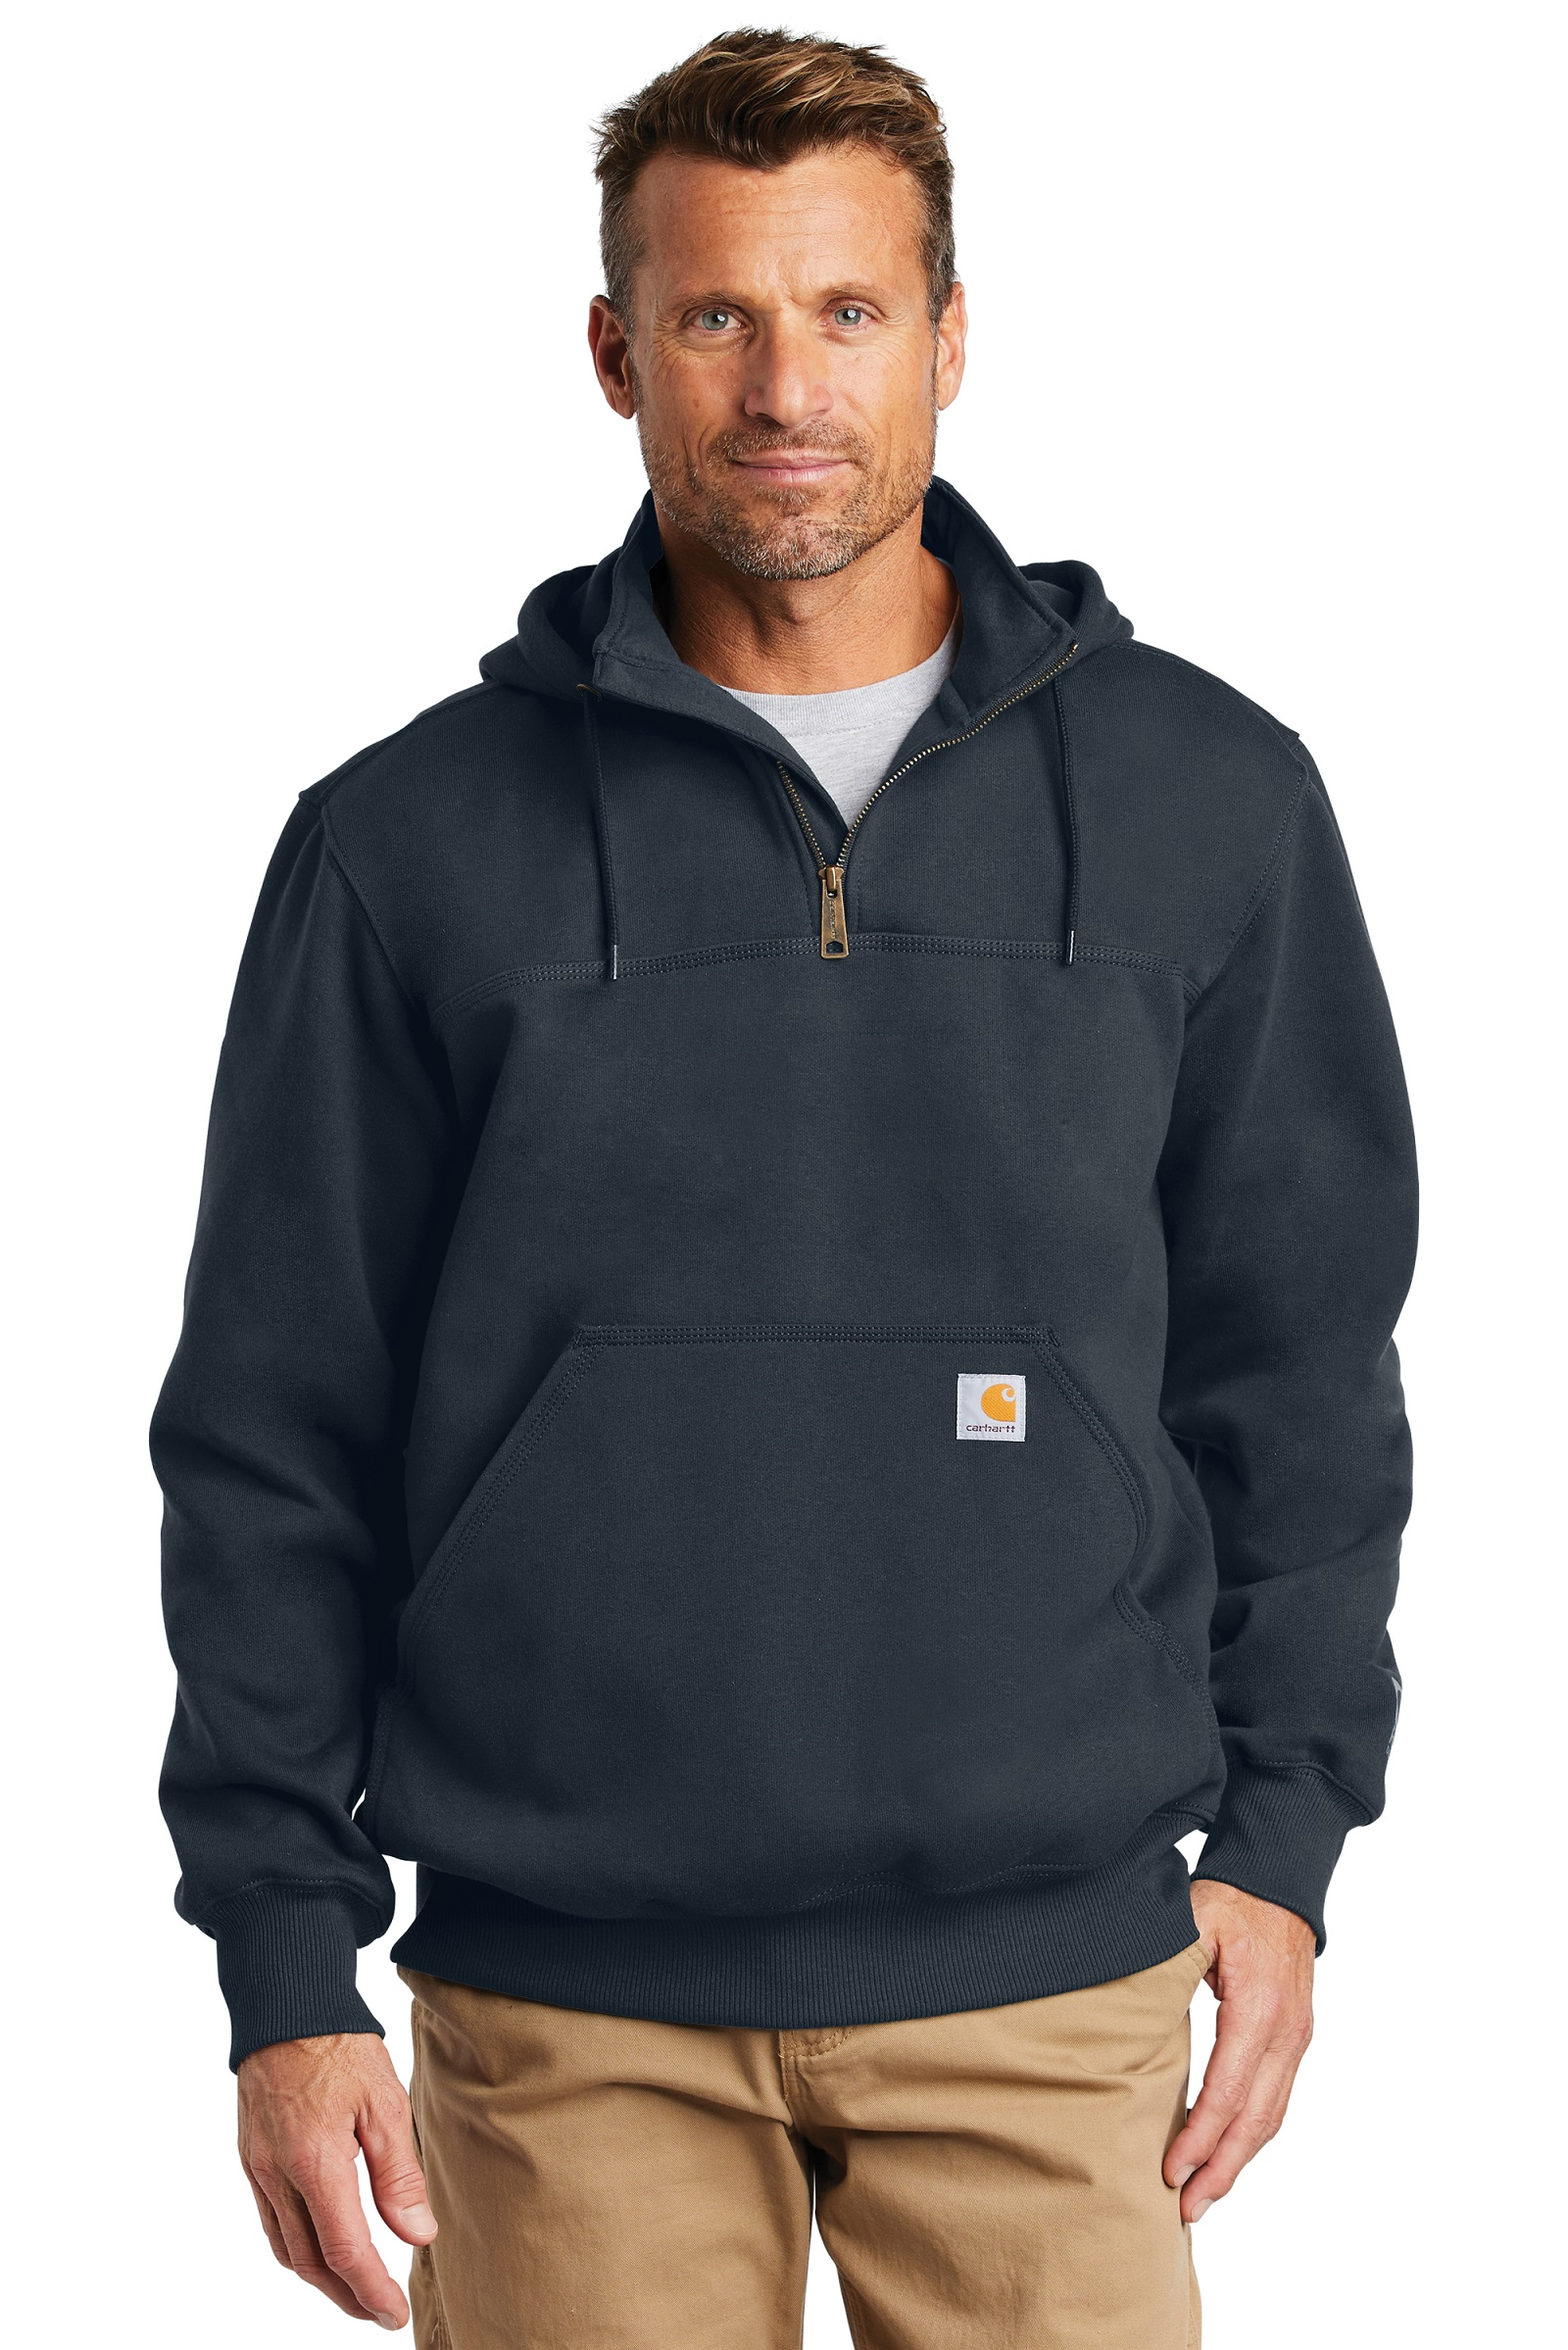 Carhartt Embroidered Rain Defender Paxton Heavyweight Hooded Sweatshirt